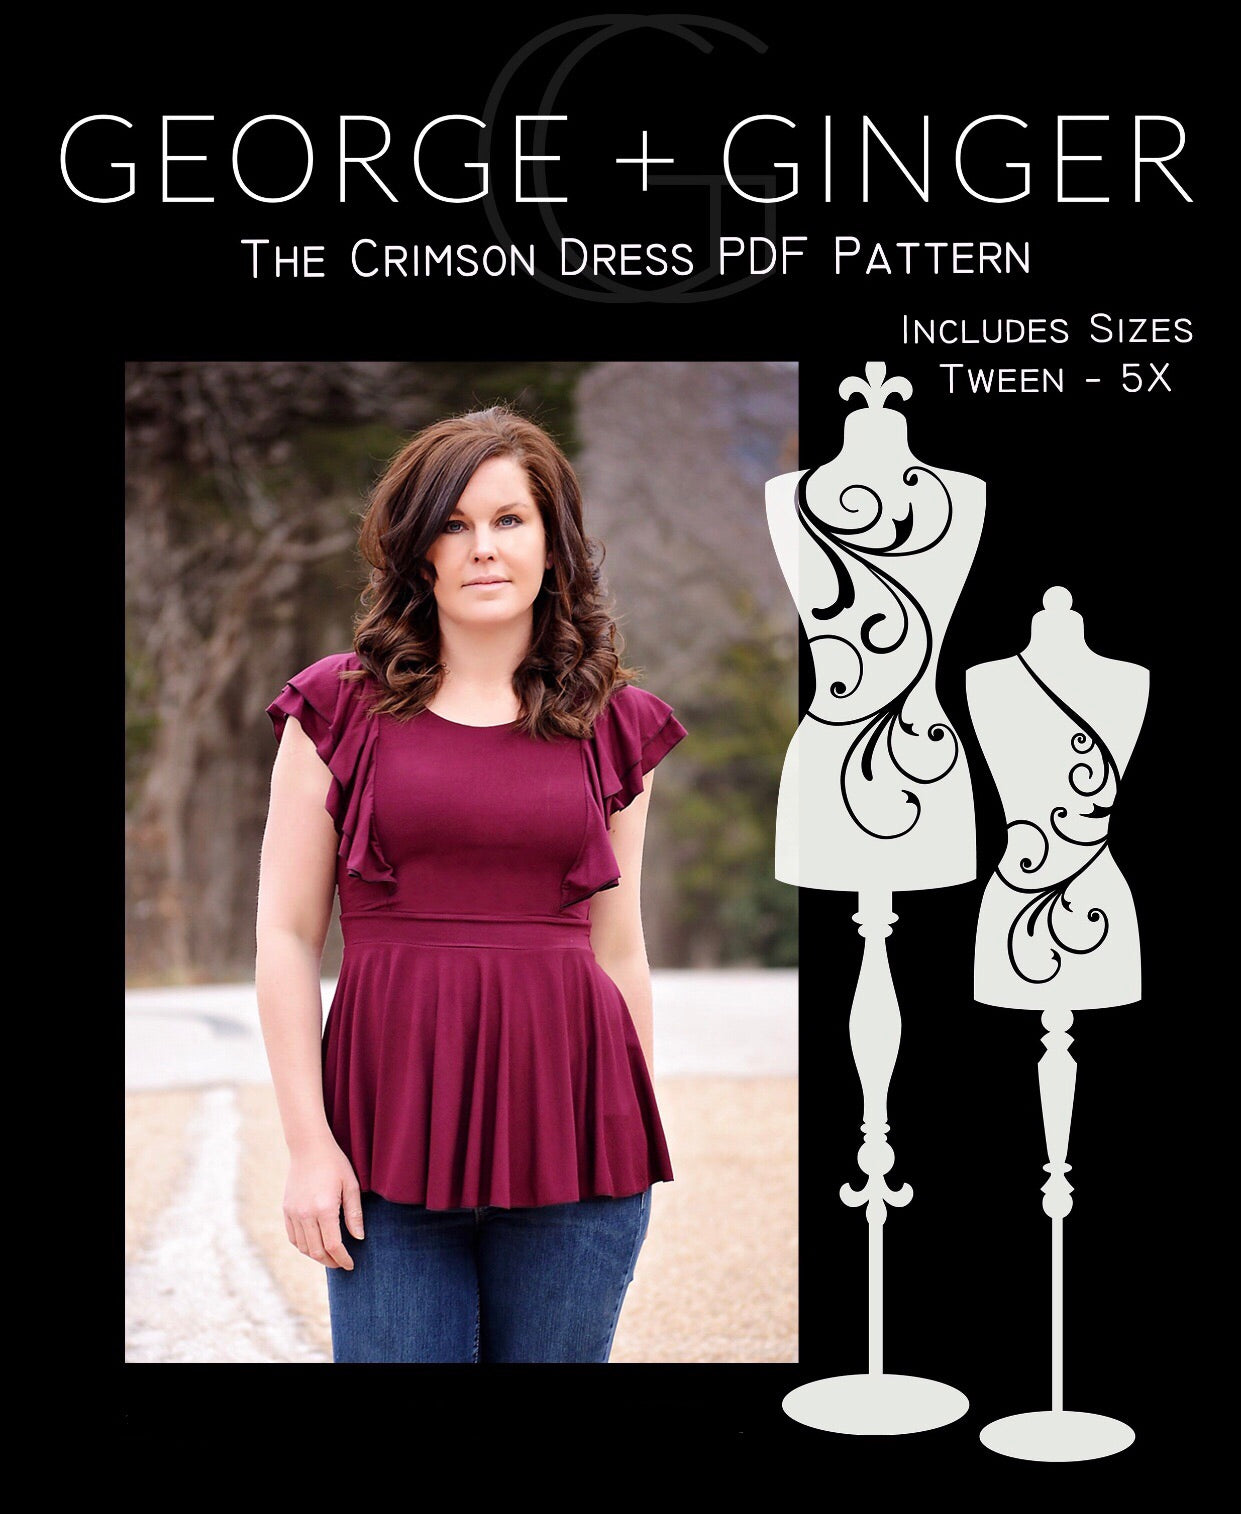 The Crimson Dress PDF Sewing Pattern